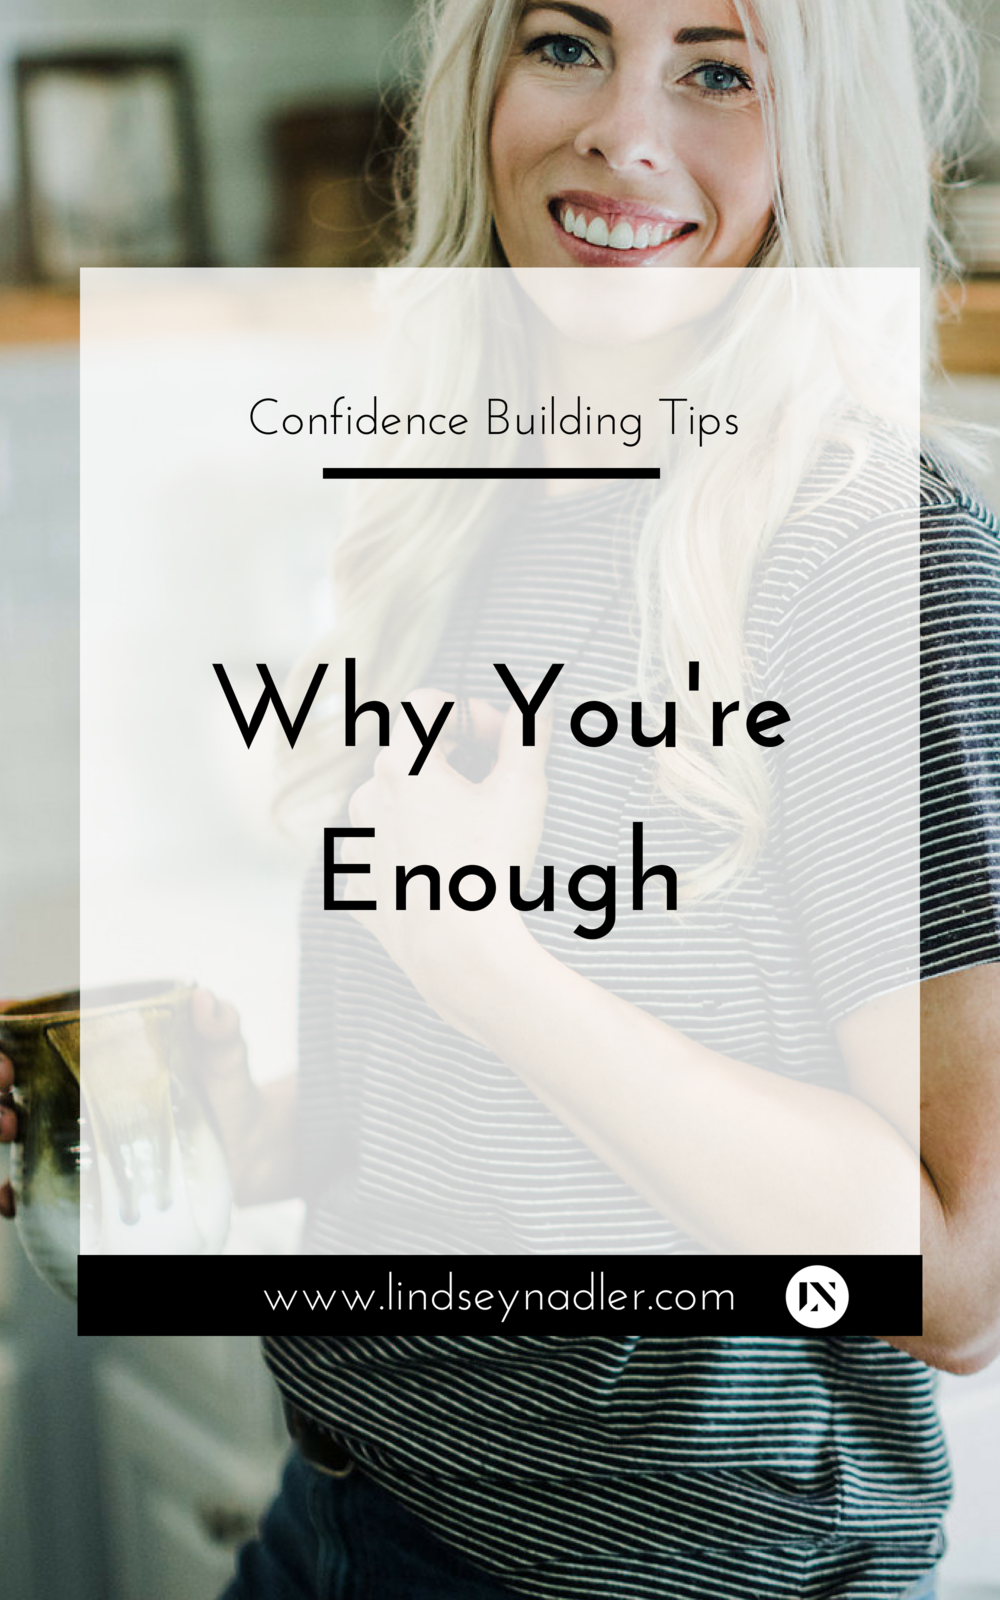 Why You're Enough